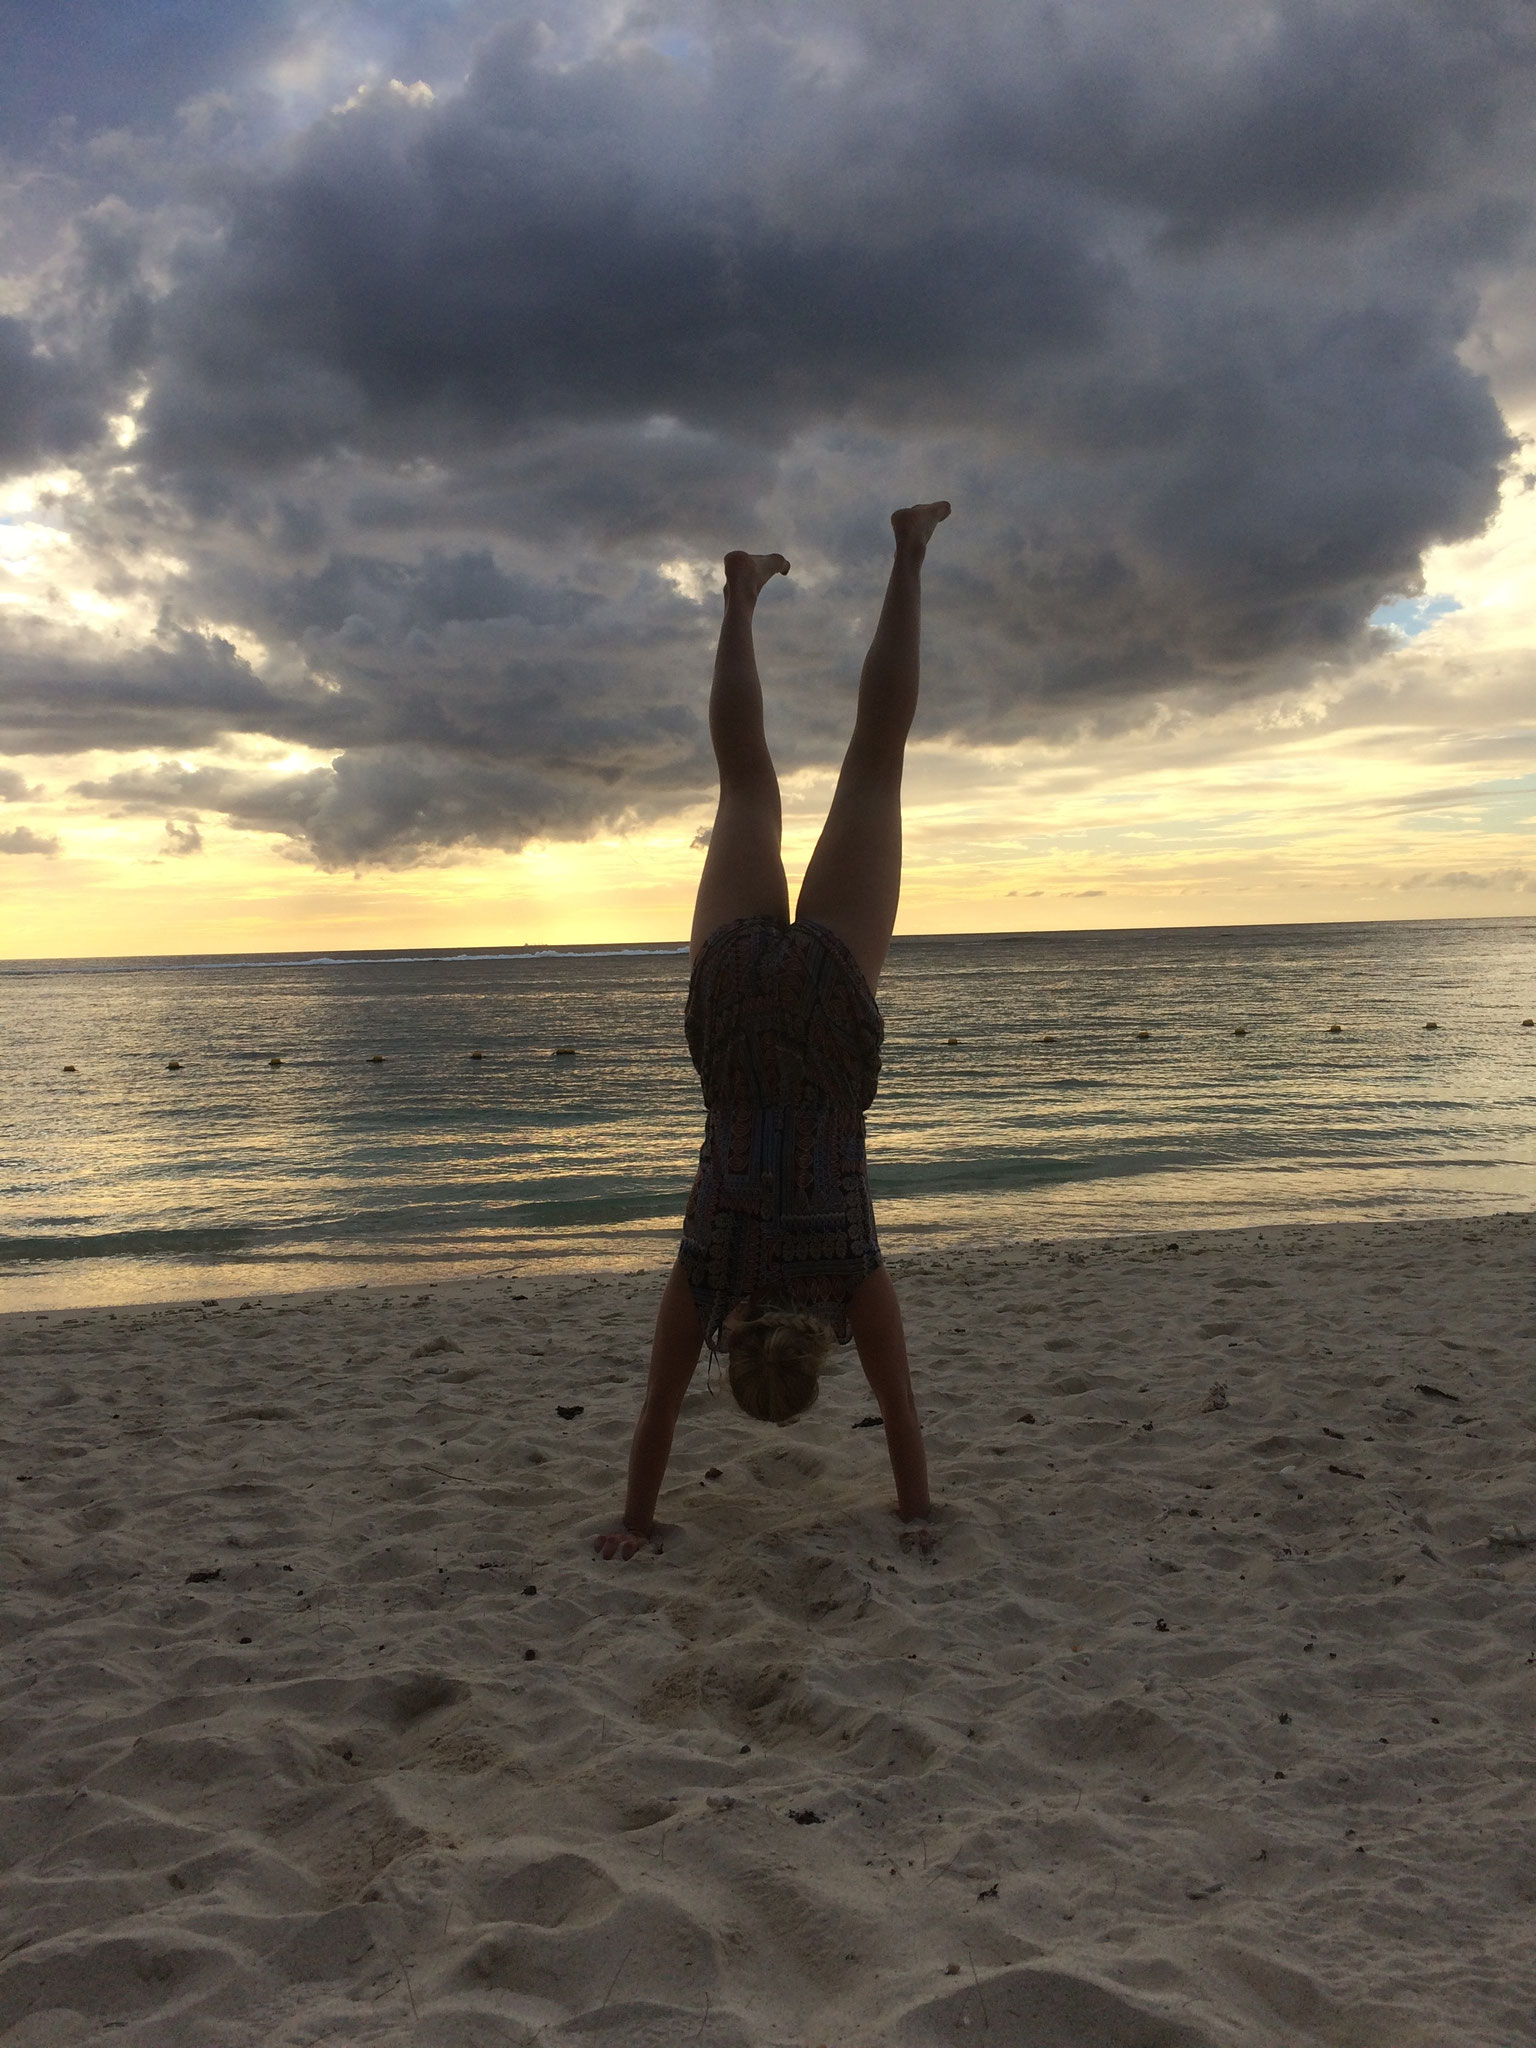 Handstand-Hannah on Tour!